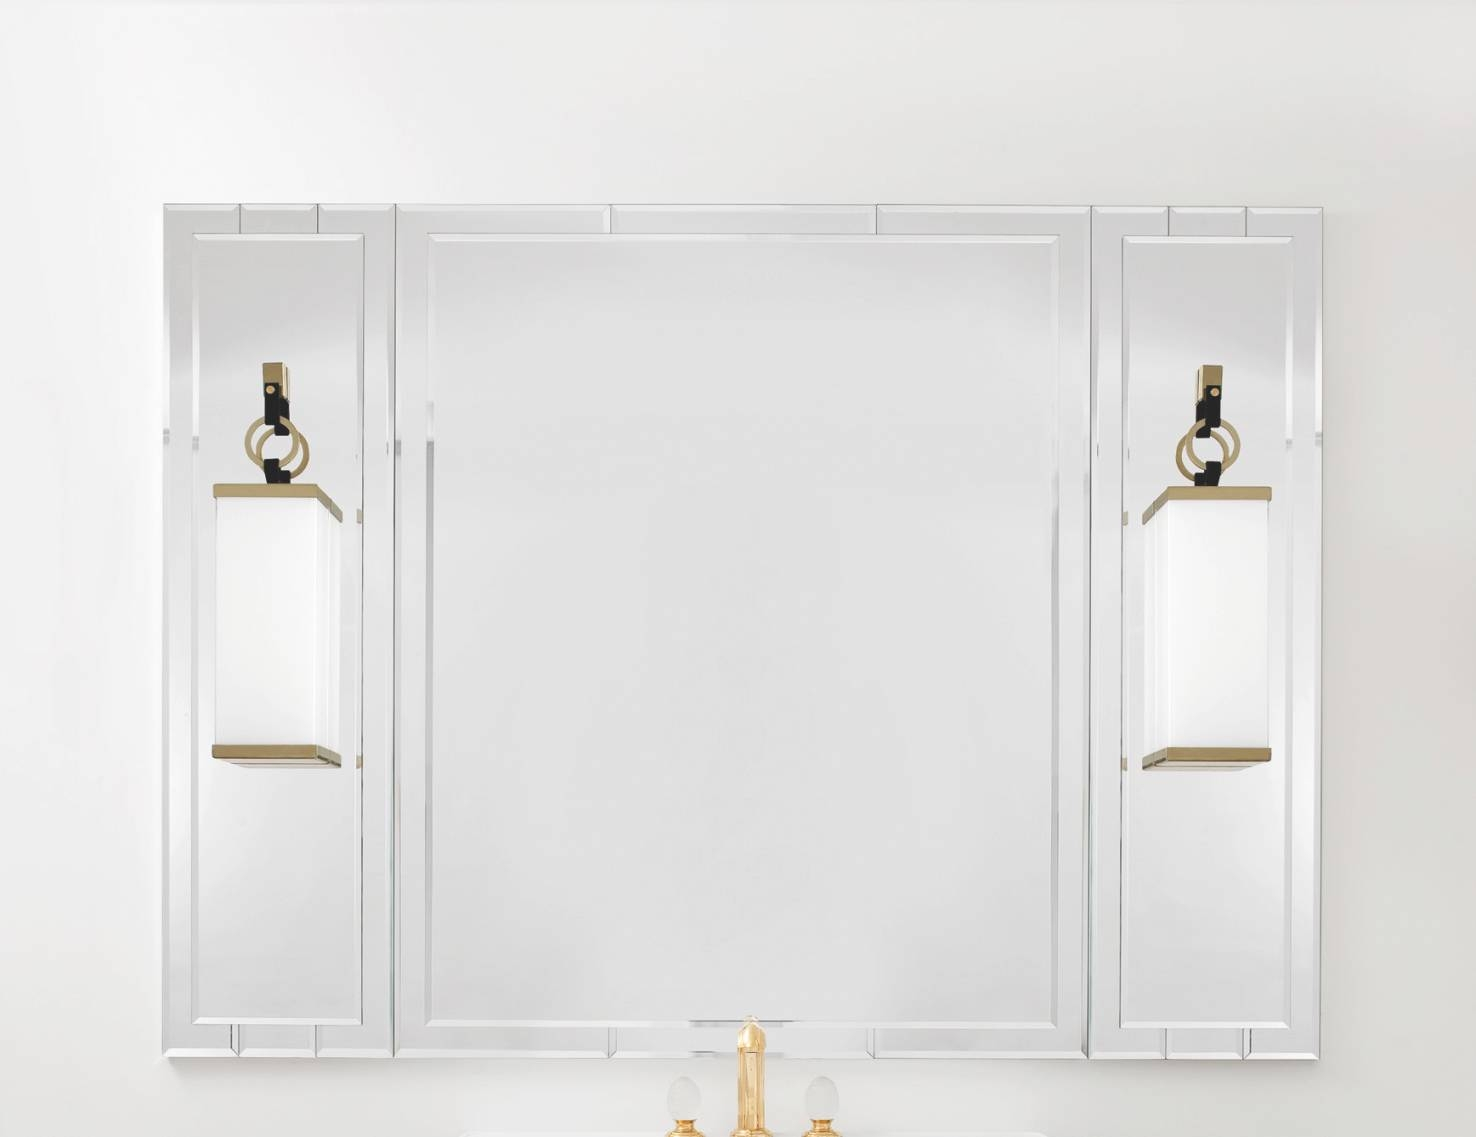 Art Deco Bathroom Mirrors | Home Design pertaining to Art Deco Style Bathroom Mirrors (Image 11 of 25)